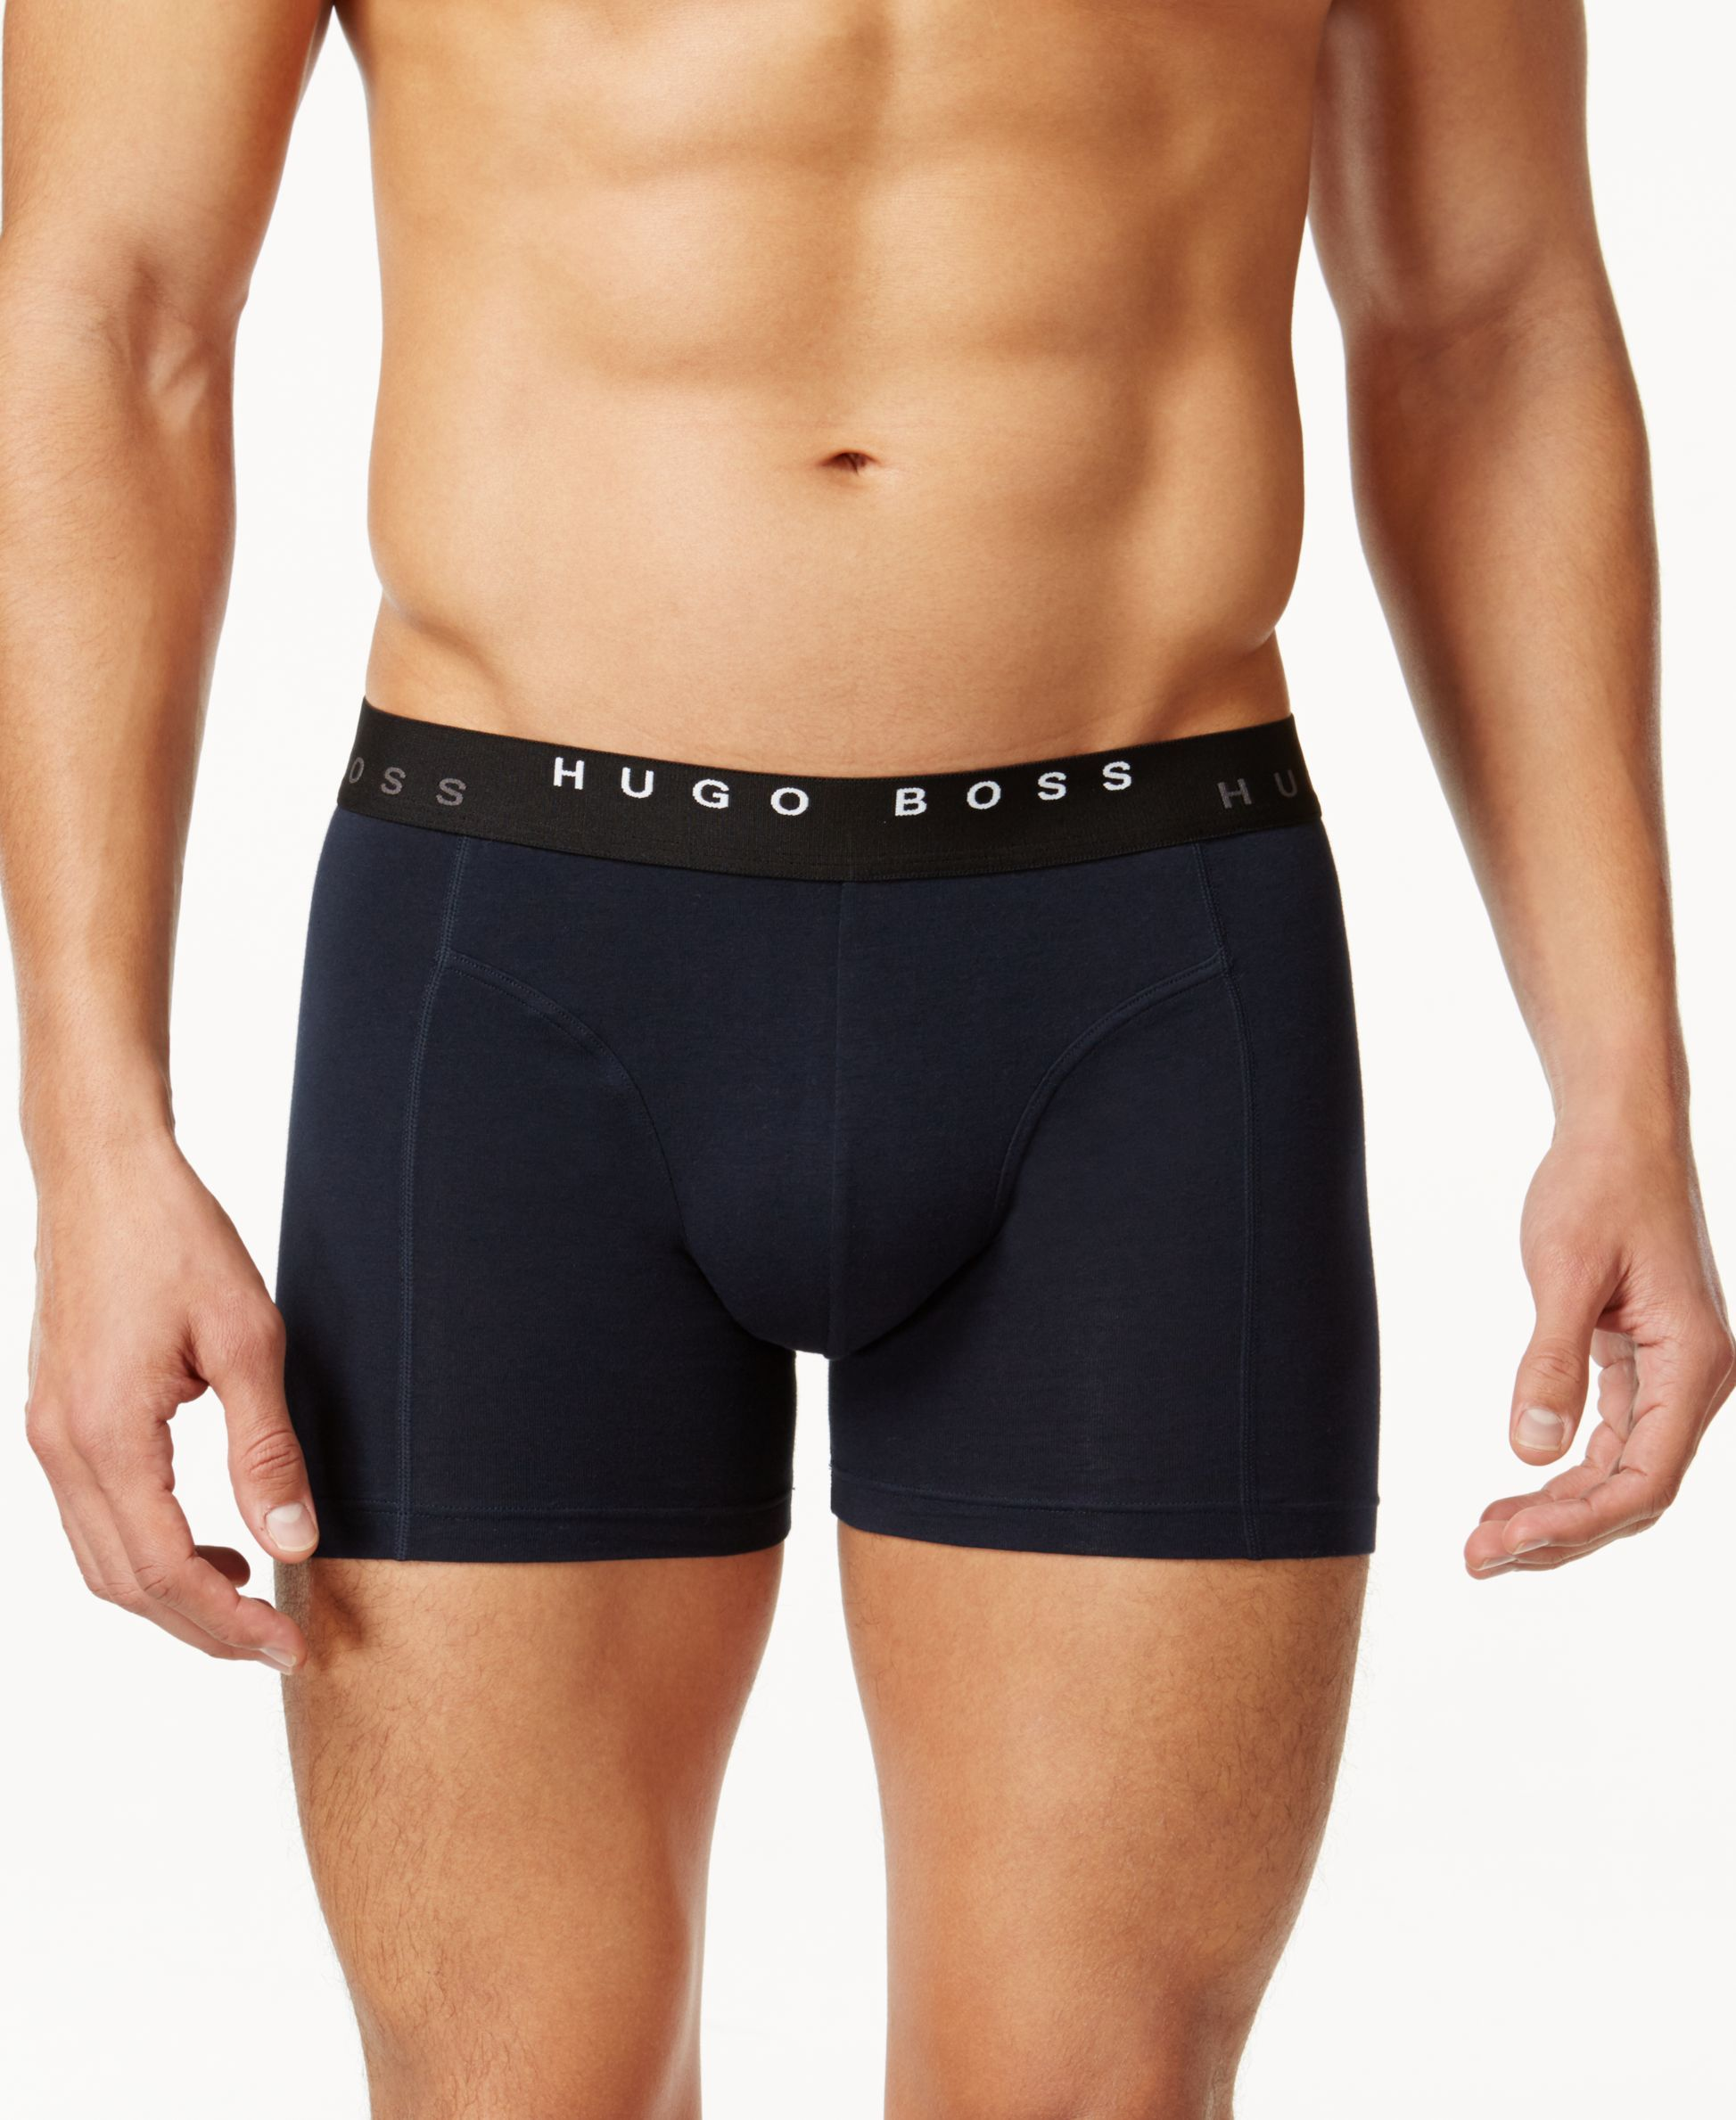 Hugo Boss Cyclist Boxer Briefs a7997c9758b58